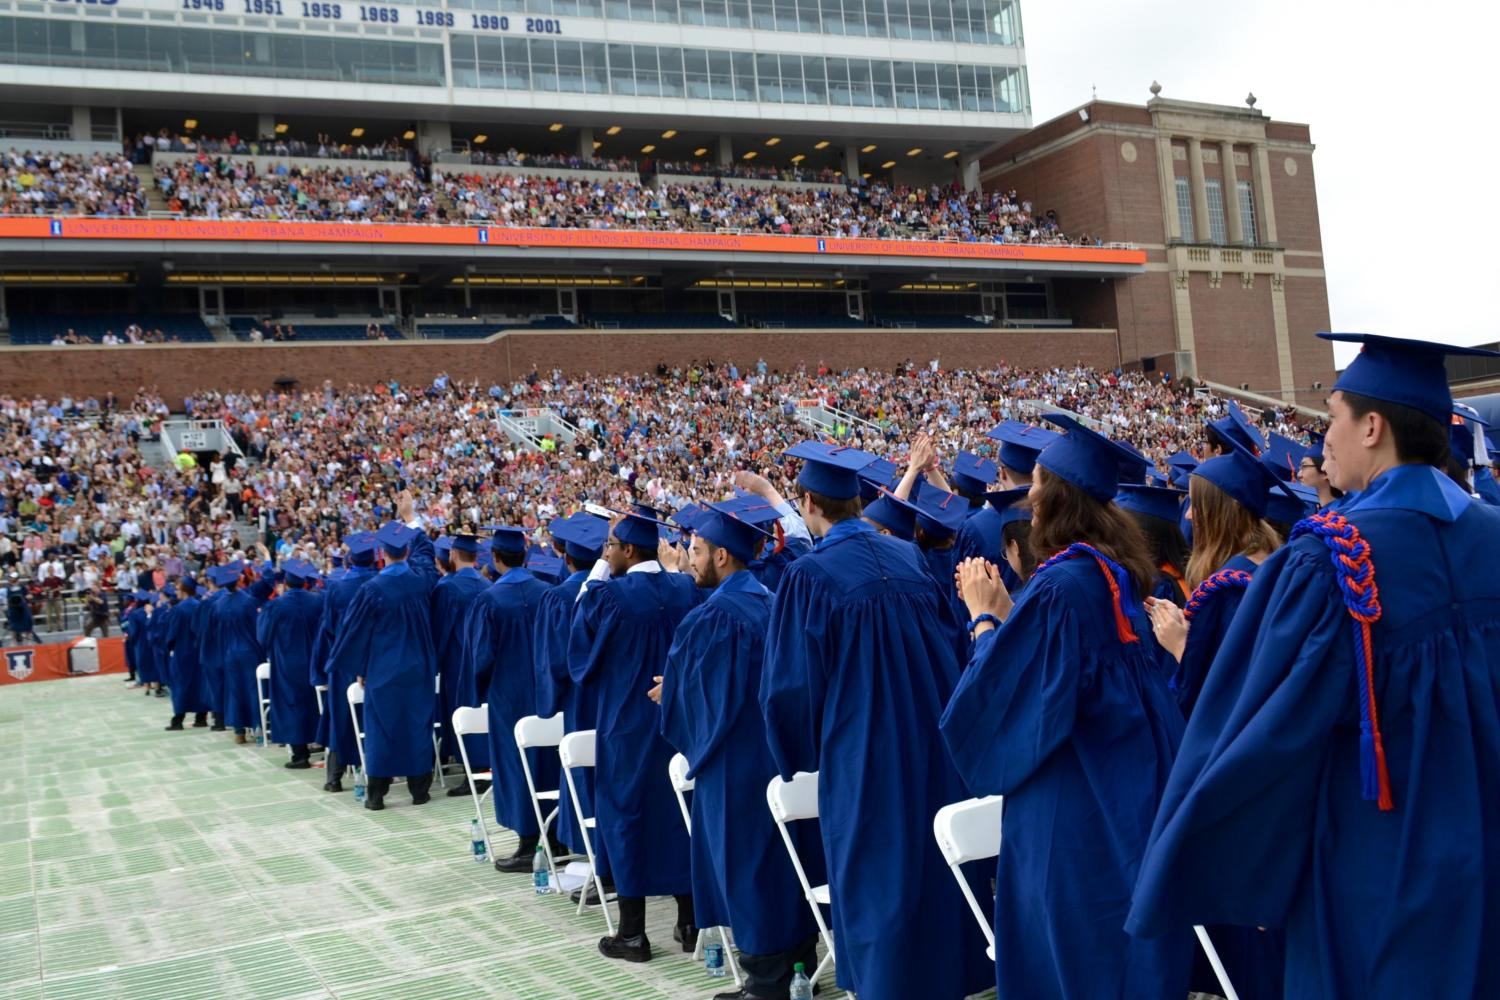 University Of Illinois At Urbana-Champaign Calendar 2019 Spring 2019 commencement calendar | The Daily Illini